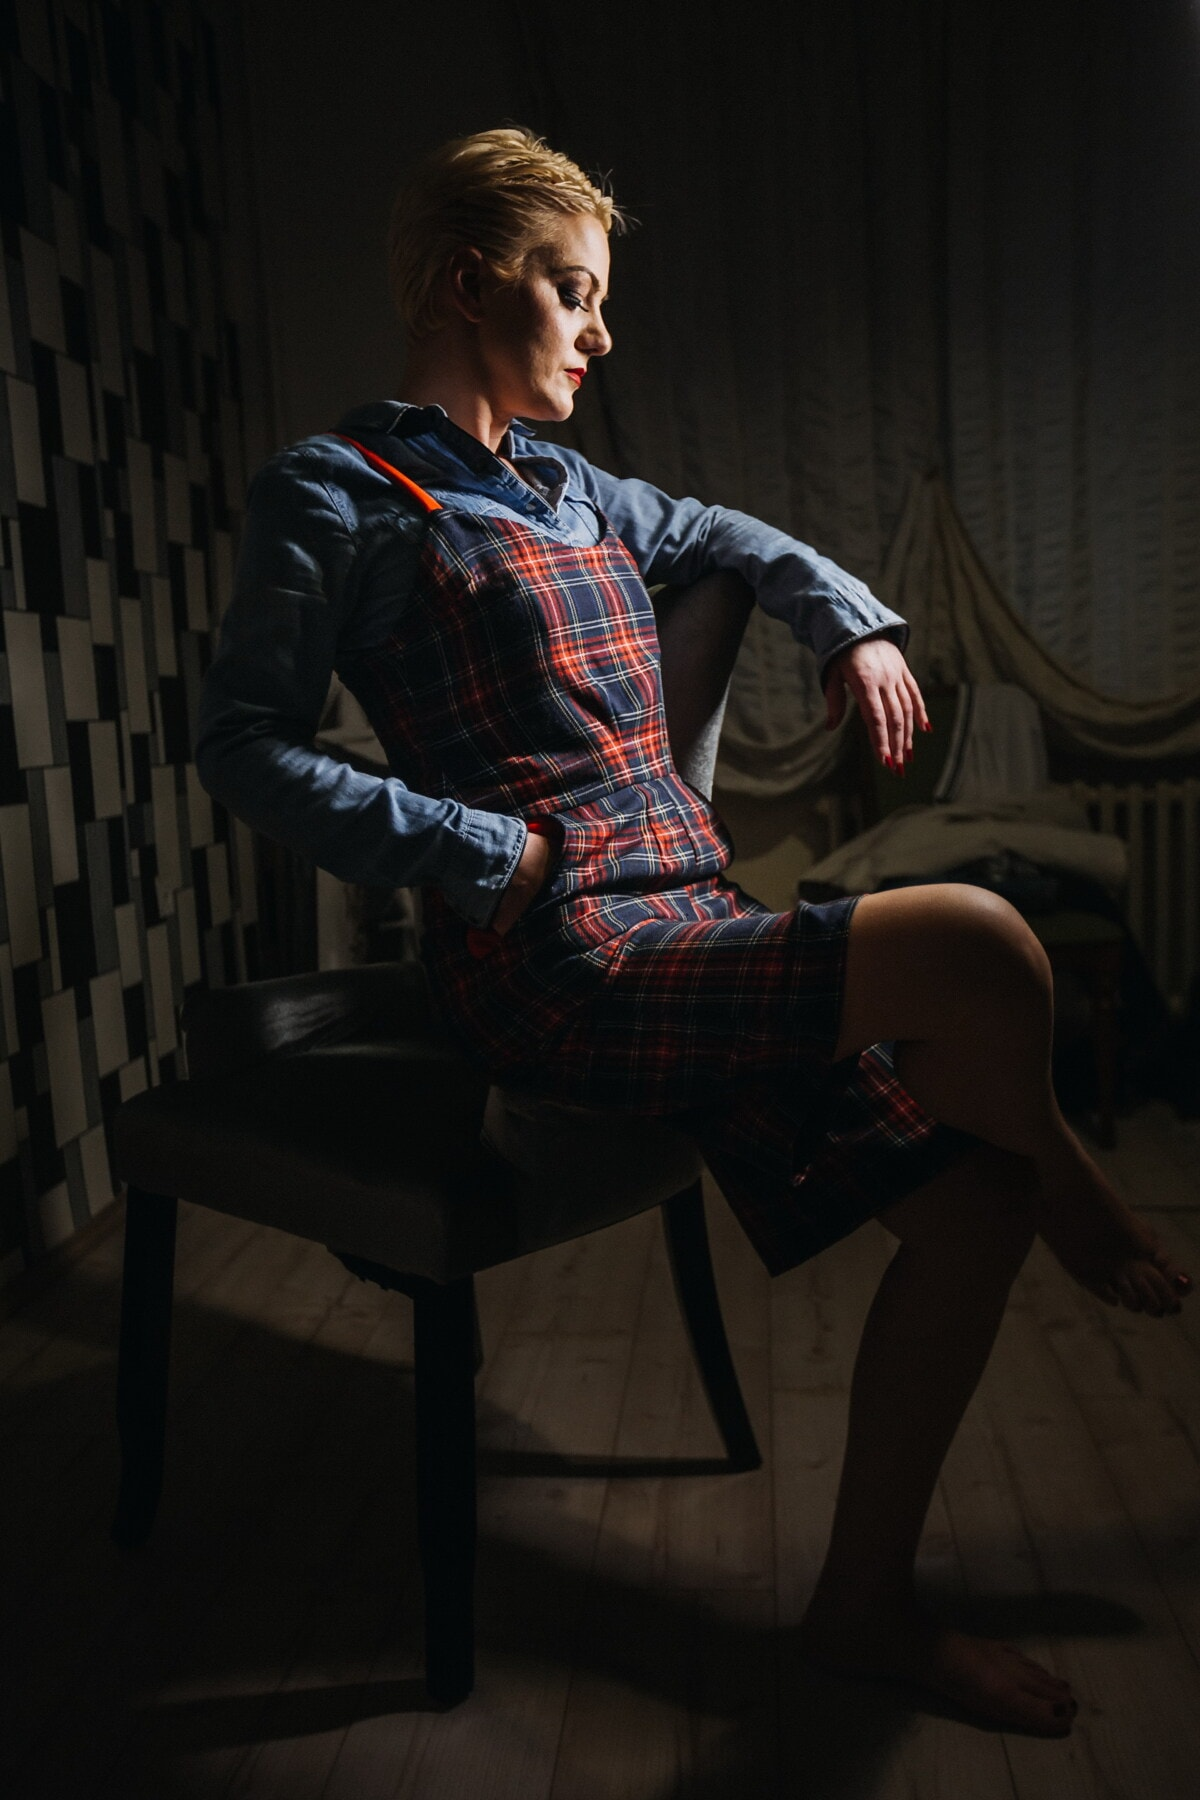 young woman, skirt, fancy, casual, style, sitting, photo model, shadow, darkness, photo studio